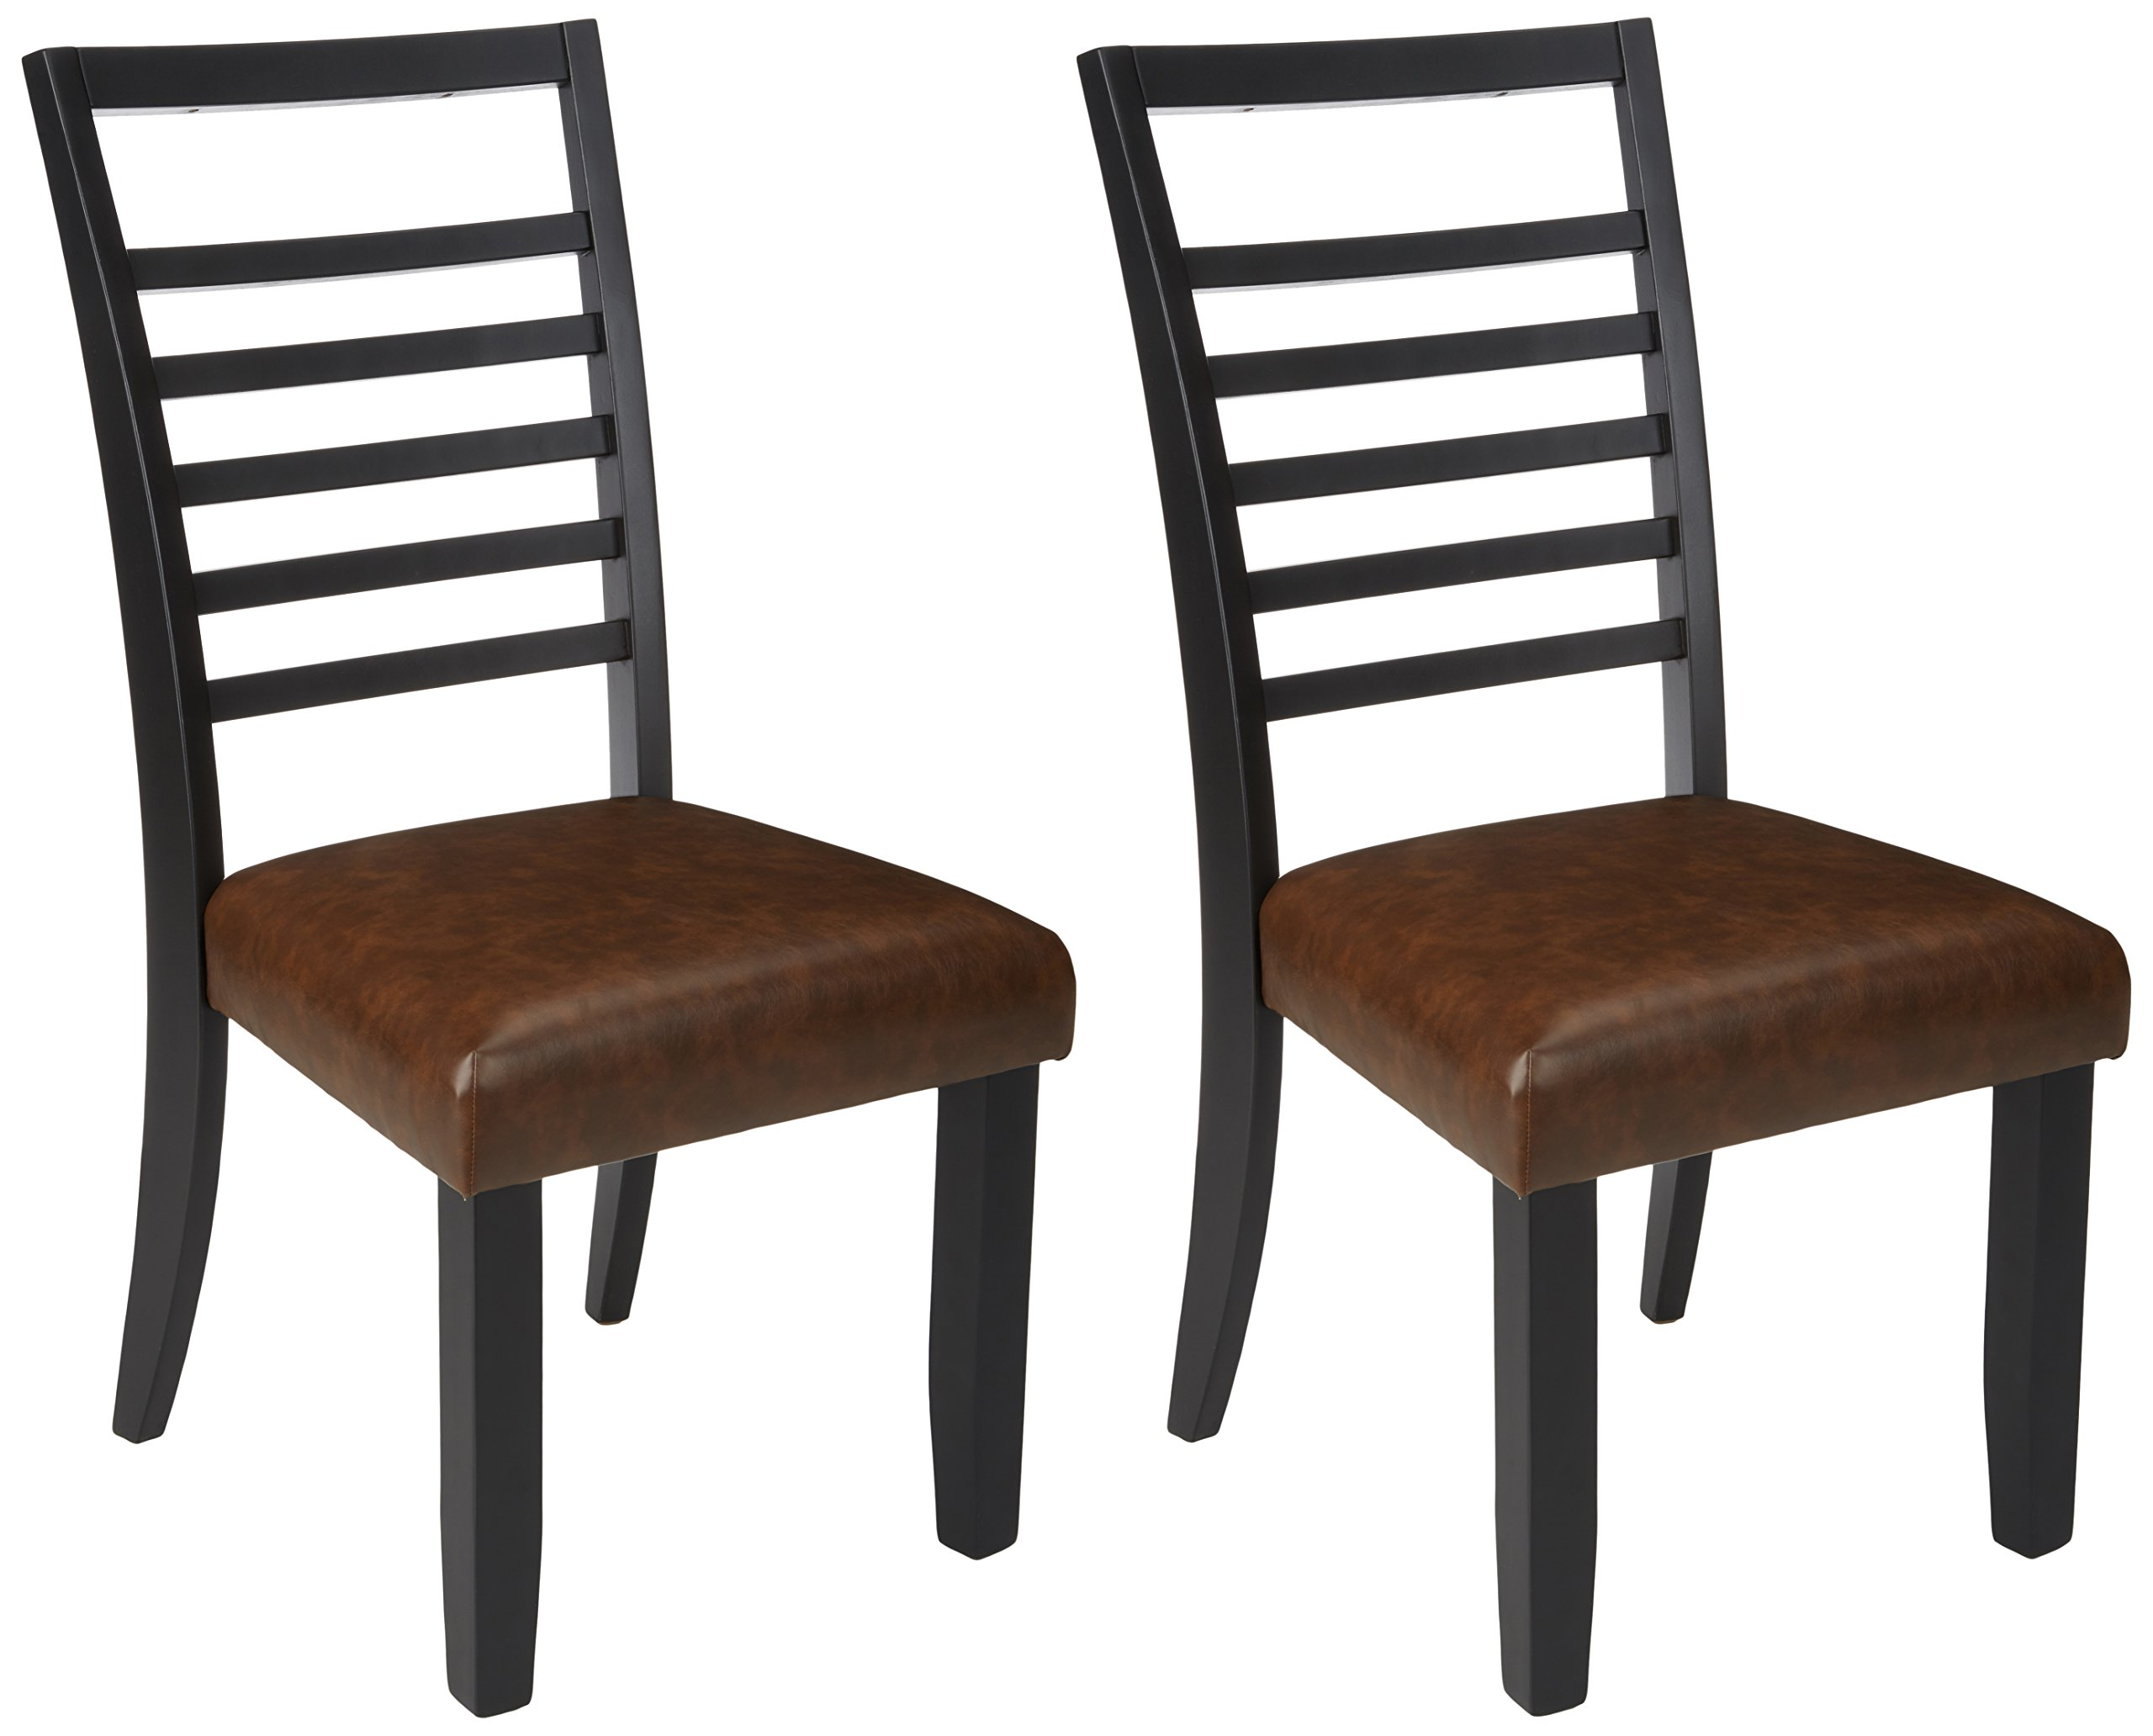 Ashley Furniture Signature Design - Manishore Dining Chair - Contemporary Style - Ladder Back - Set of 2 - Black/Brown by Signature Design by Ashley